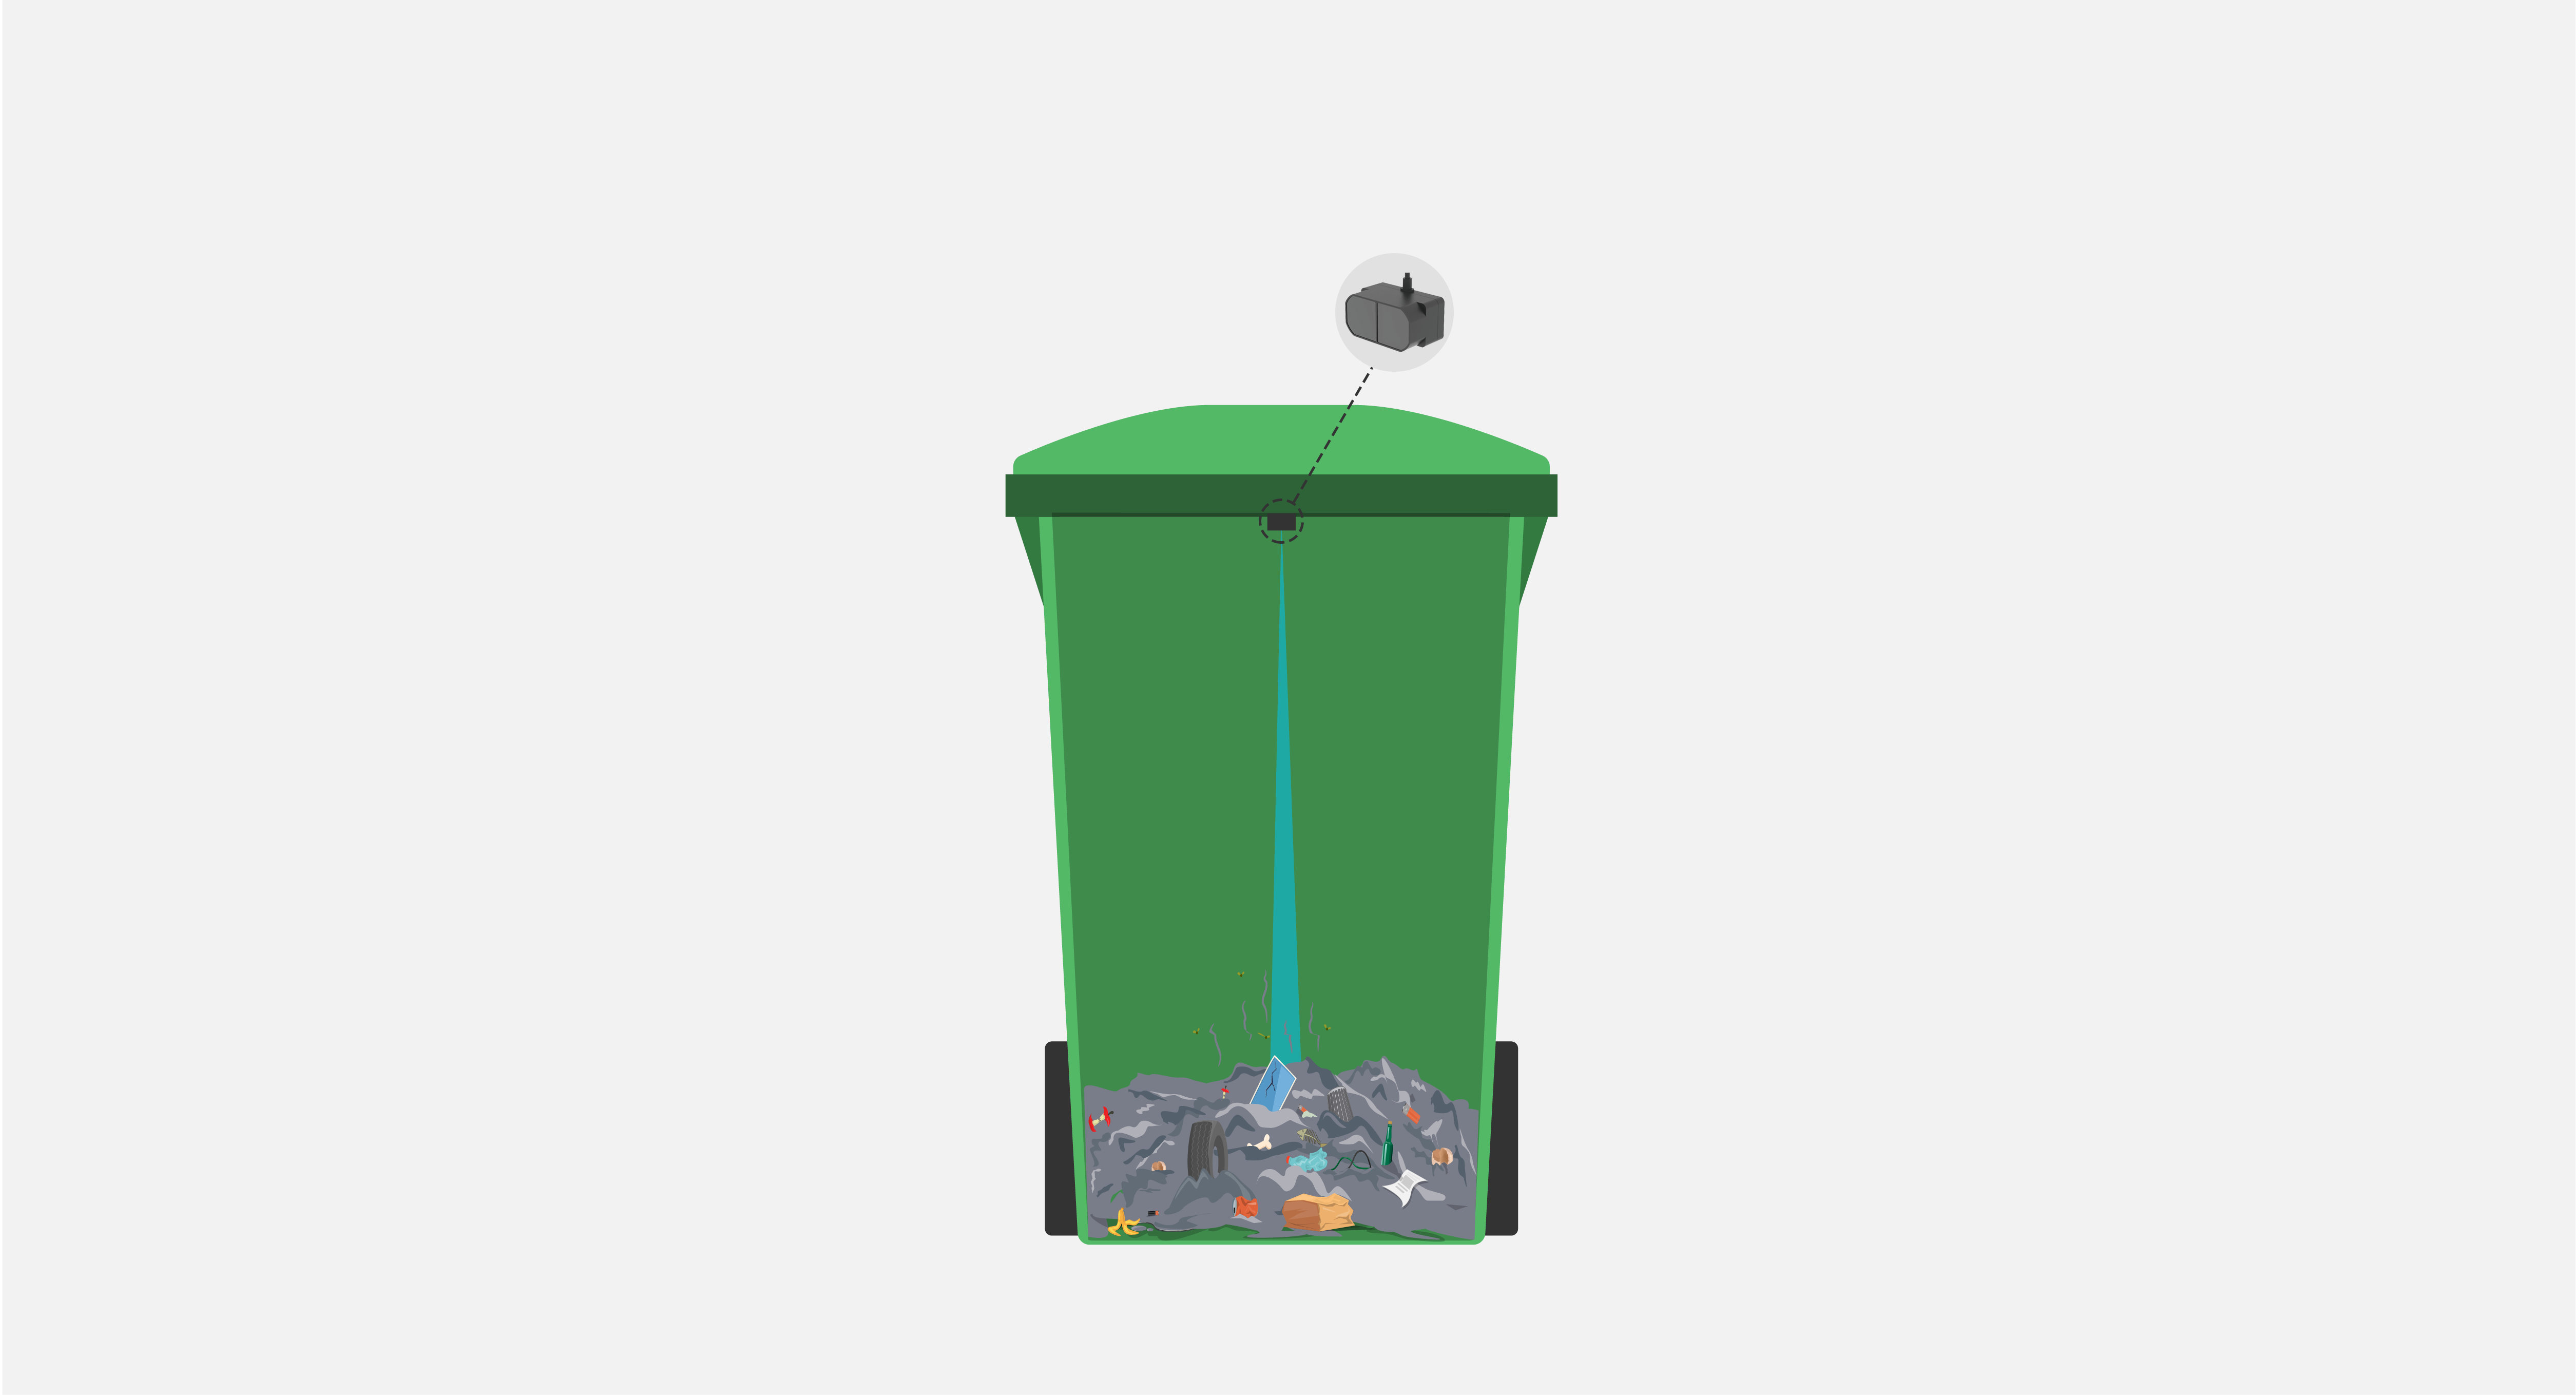 Intelligent trash can, Garbage bin sensor, Garbage bin sensor